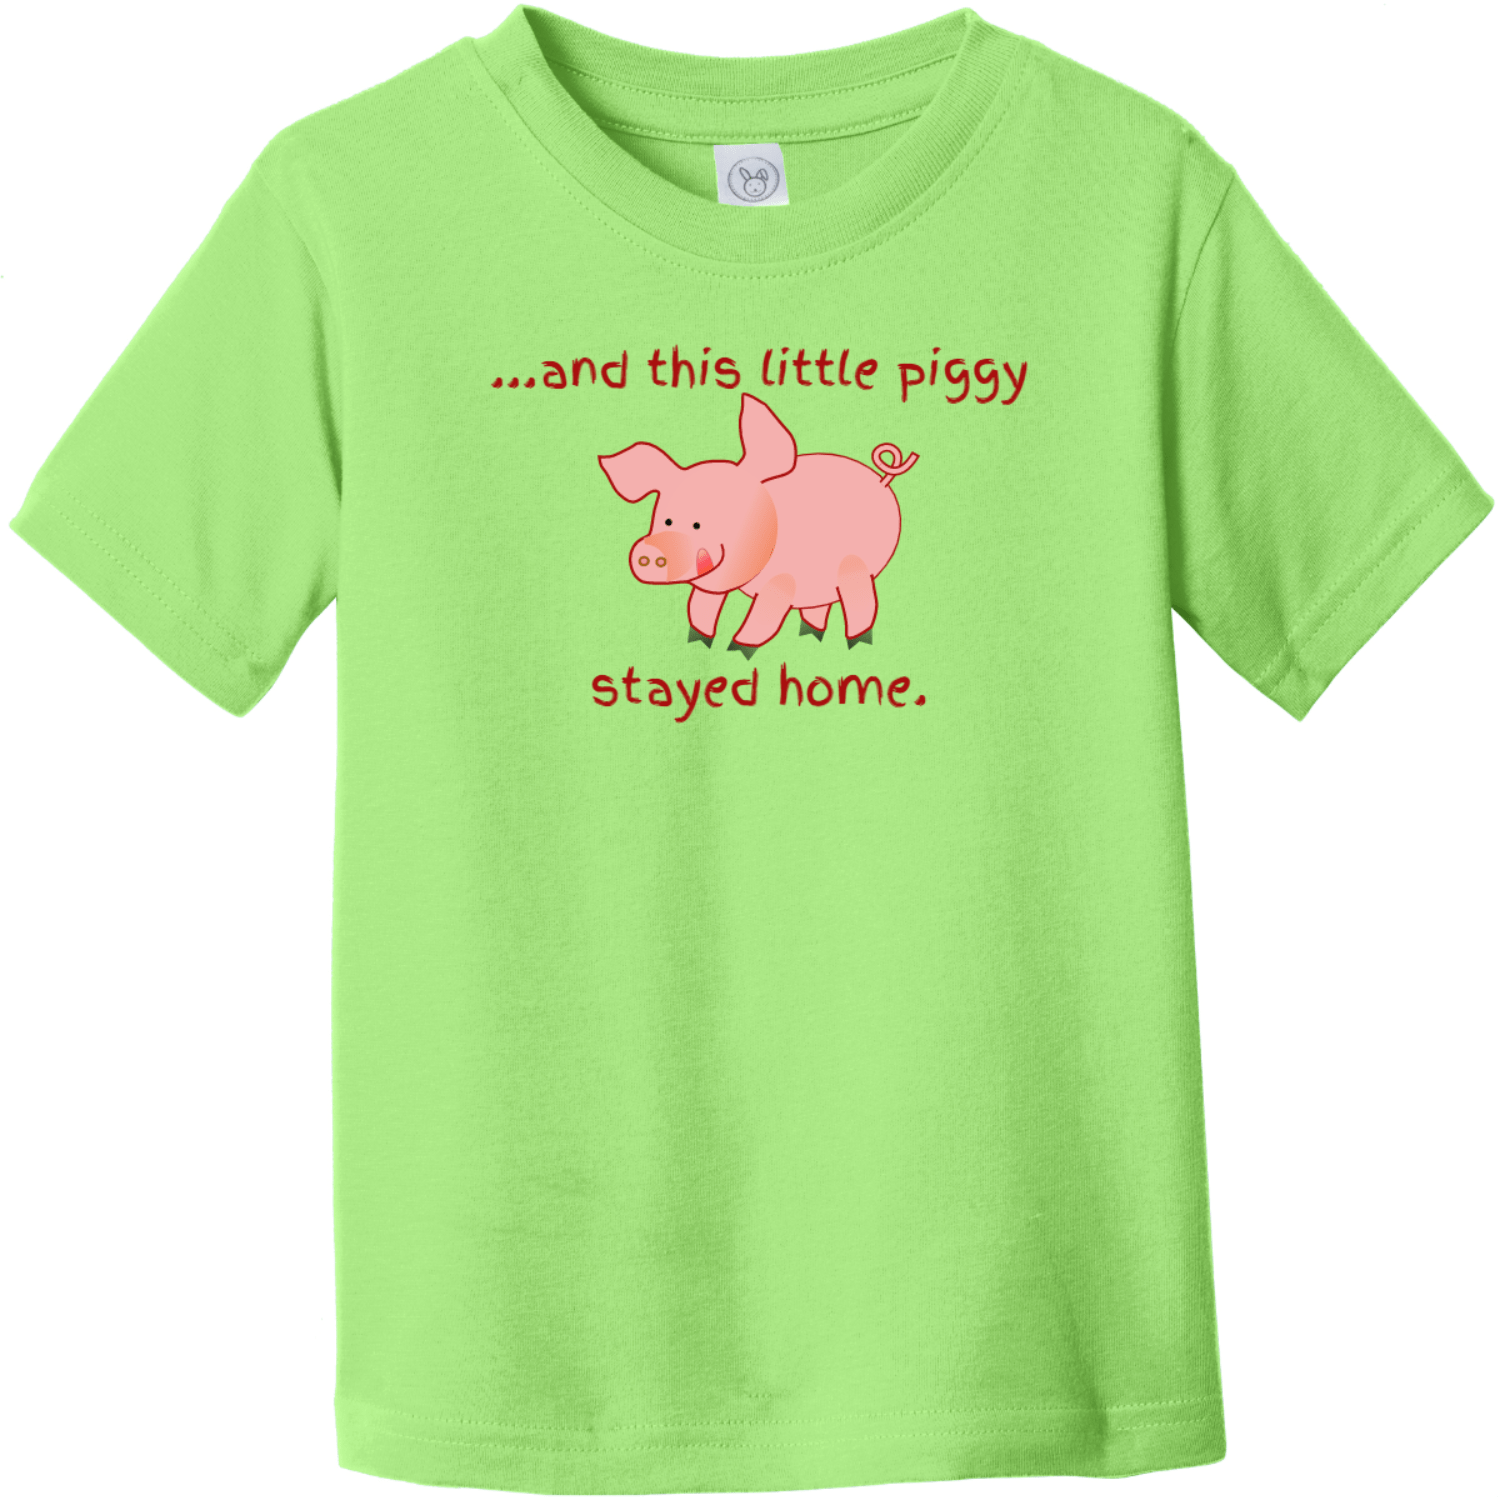 This Little Piggy Stayed Home Toddler T-Shirt Key Lime Rabbit Skins Toddler Fine Jersey Tee RS3321